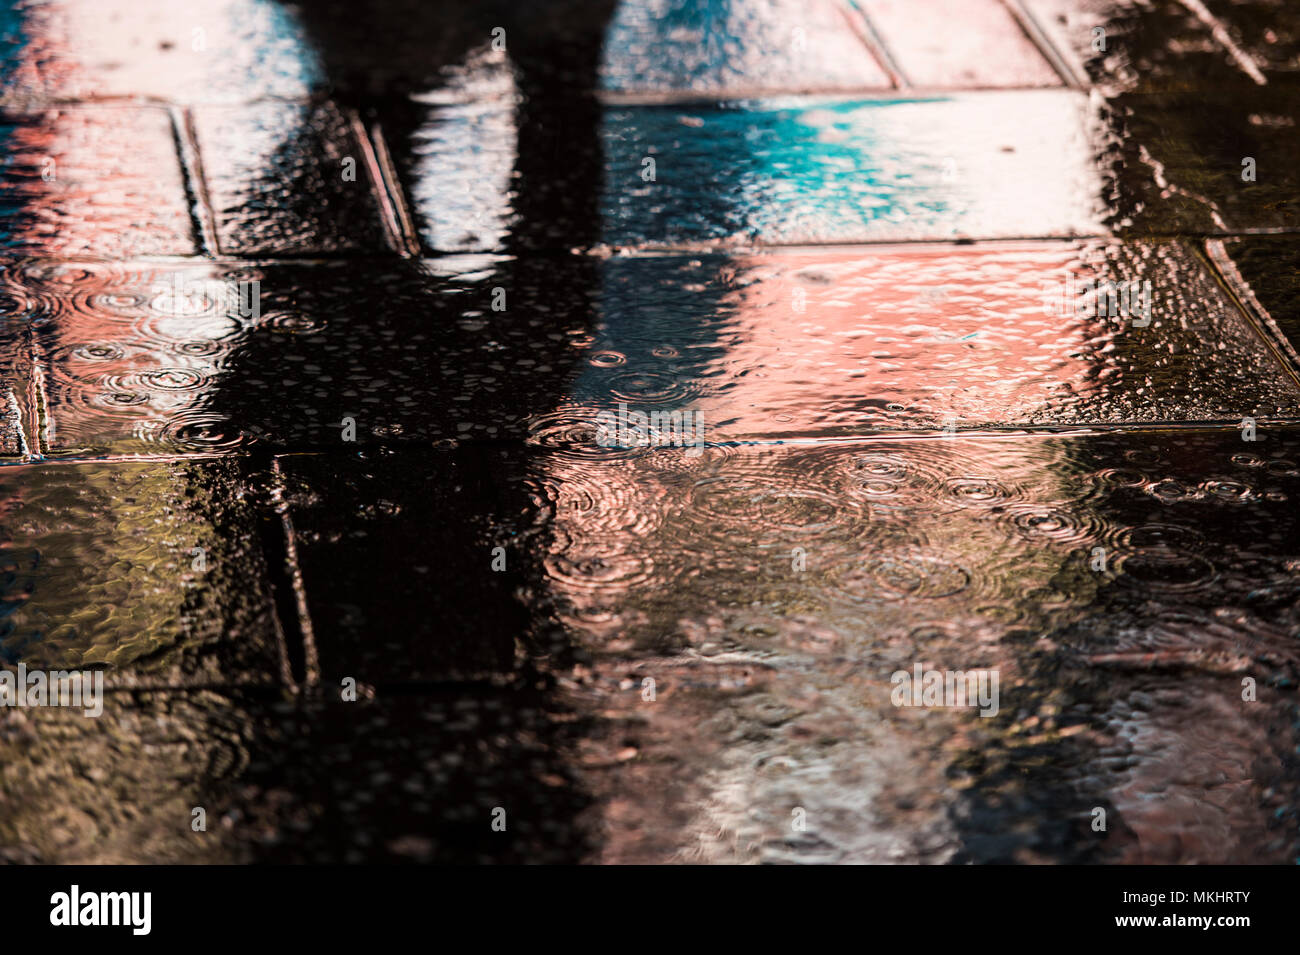 Wet asphalt - the color of calm, harmony and practicality 93